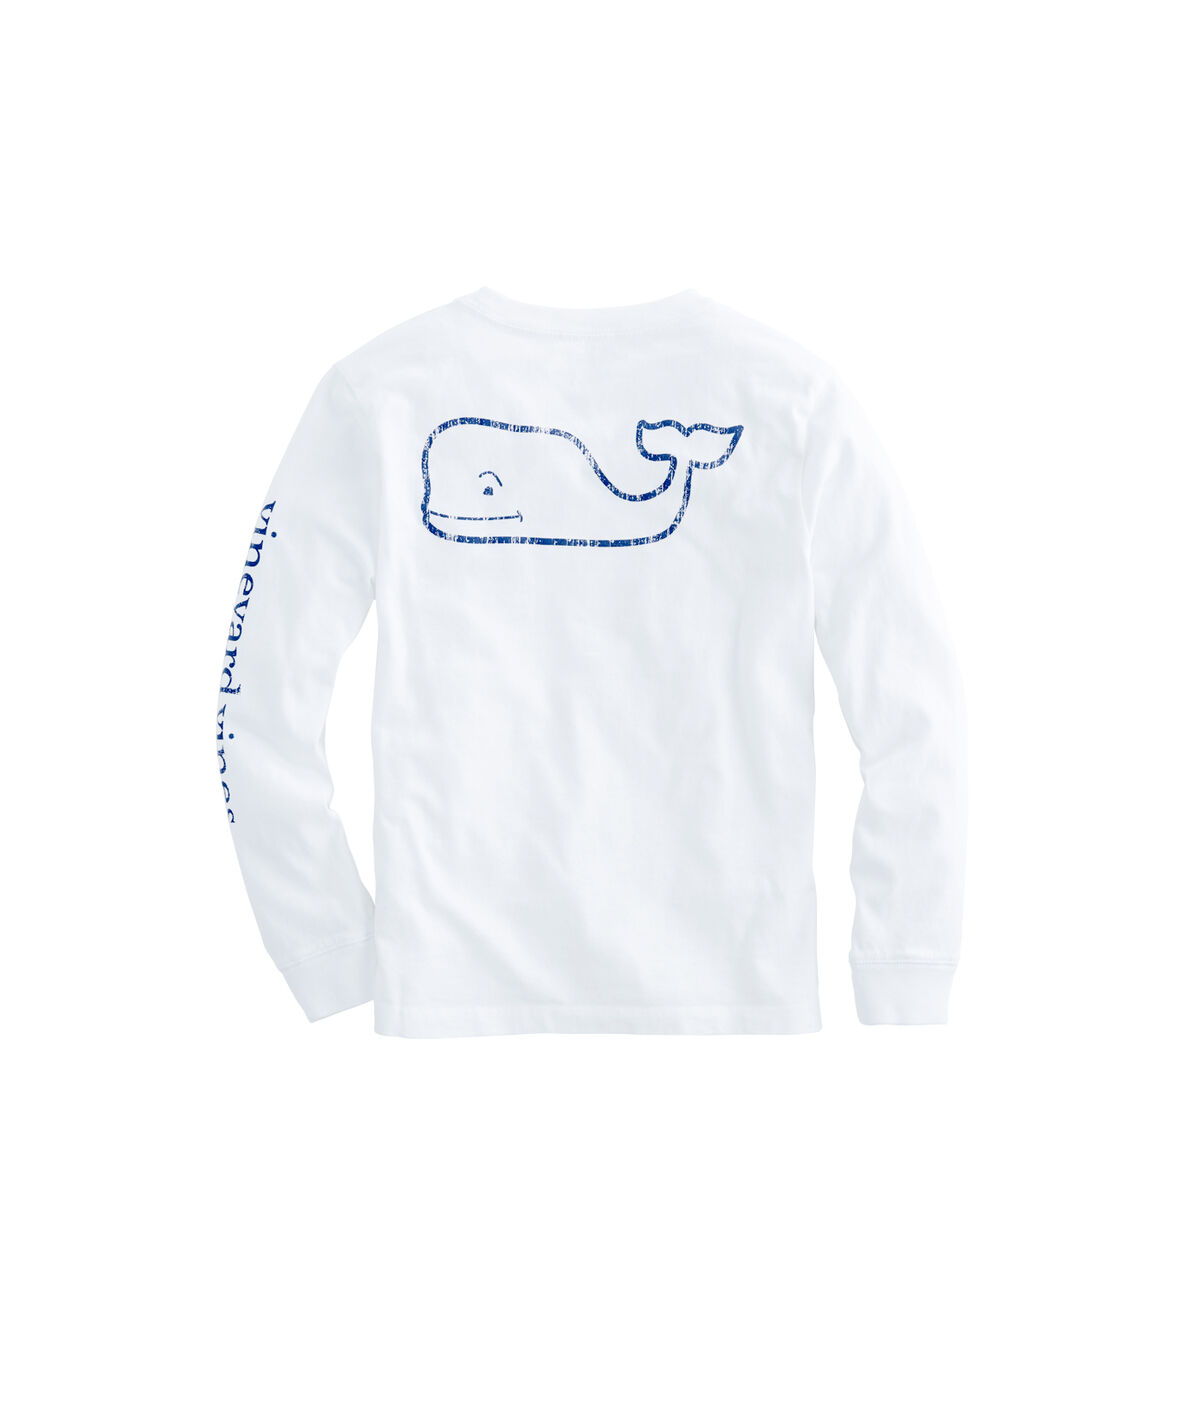 Shop Kids Long Sleeve Vintage Whale Graphic T Shirt At